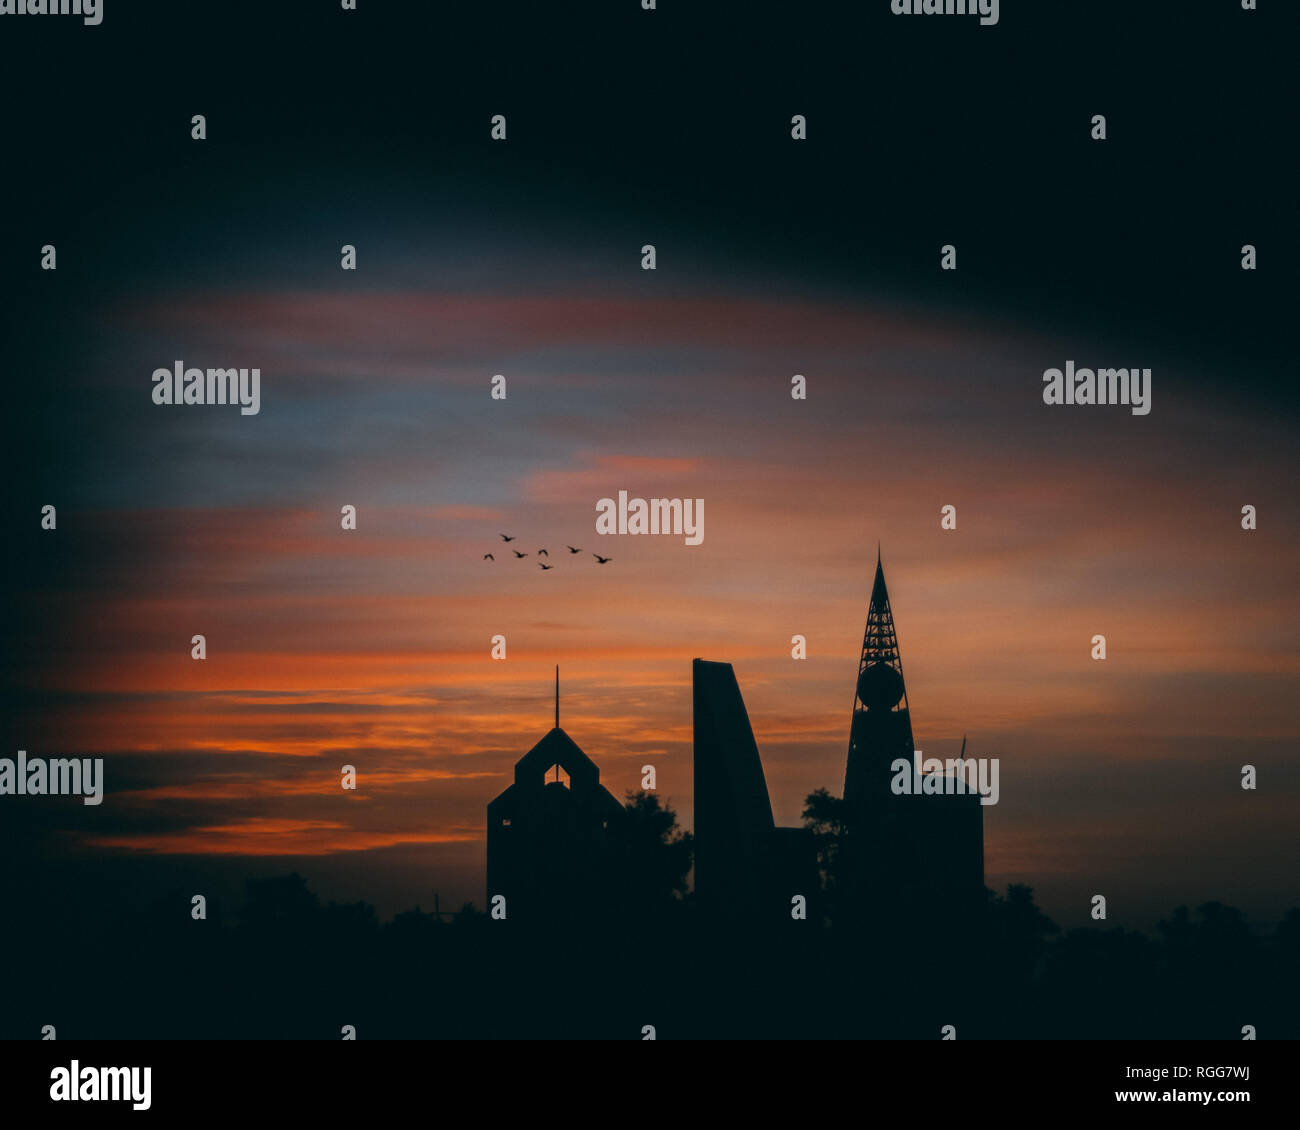 Towers of Saudi - Sunrise - Stock Image